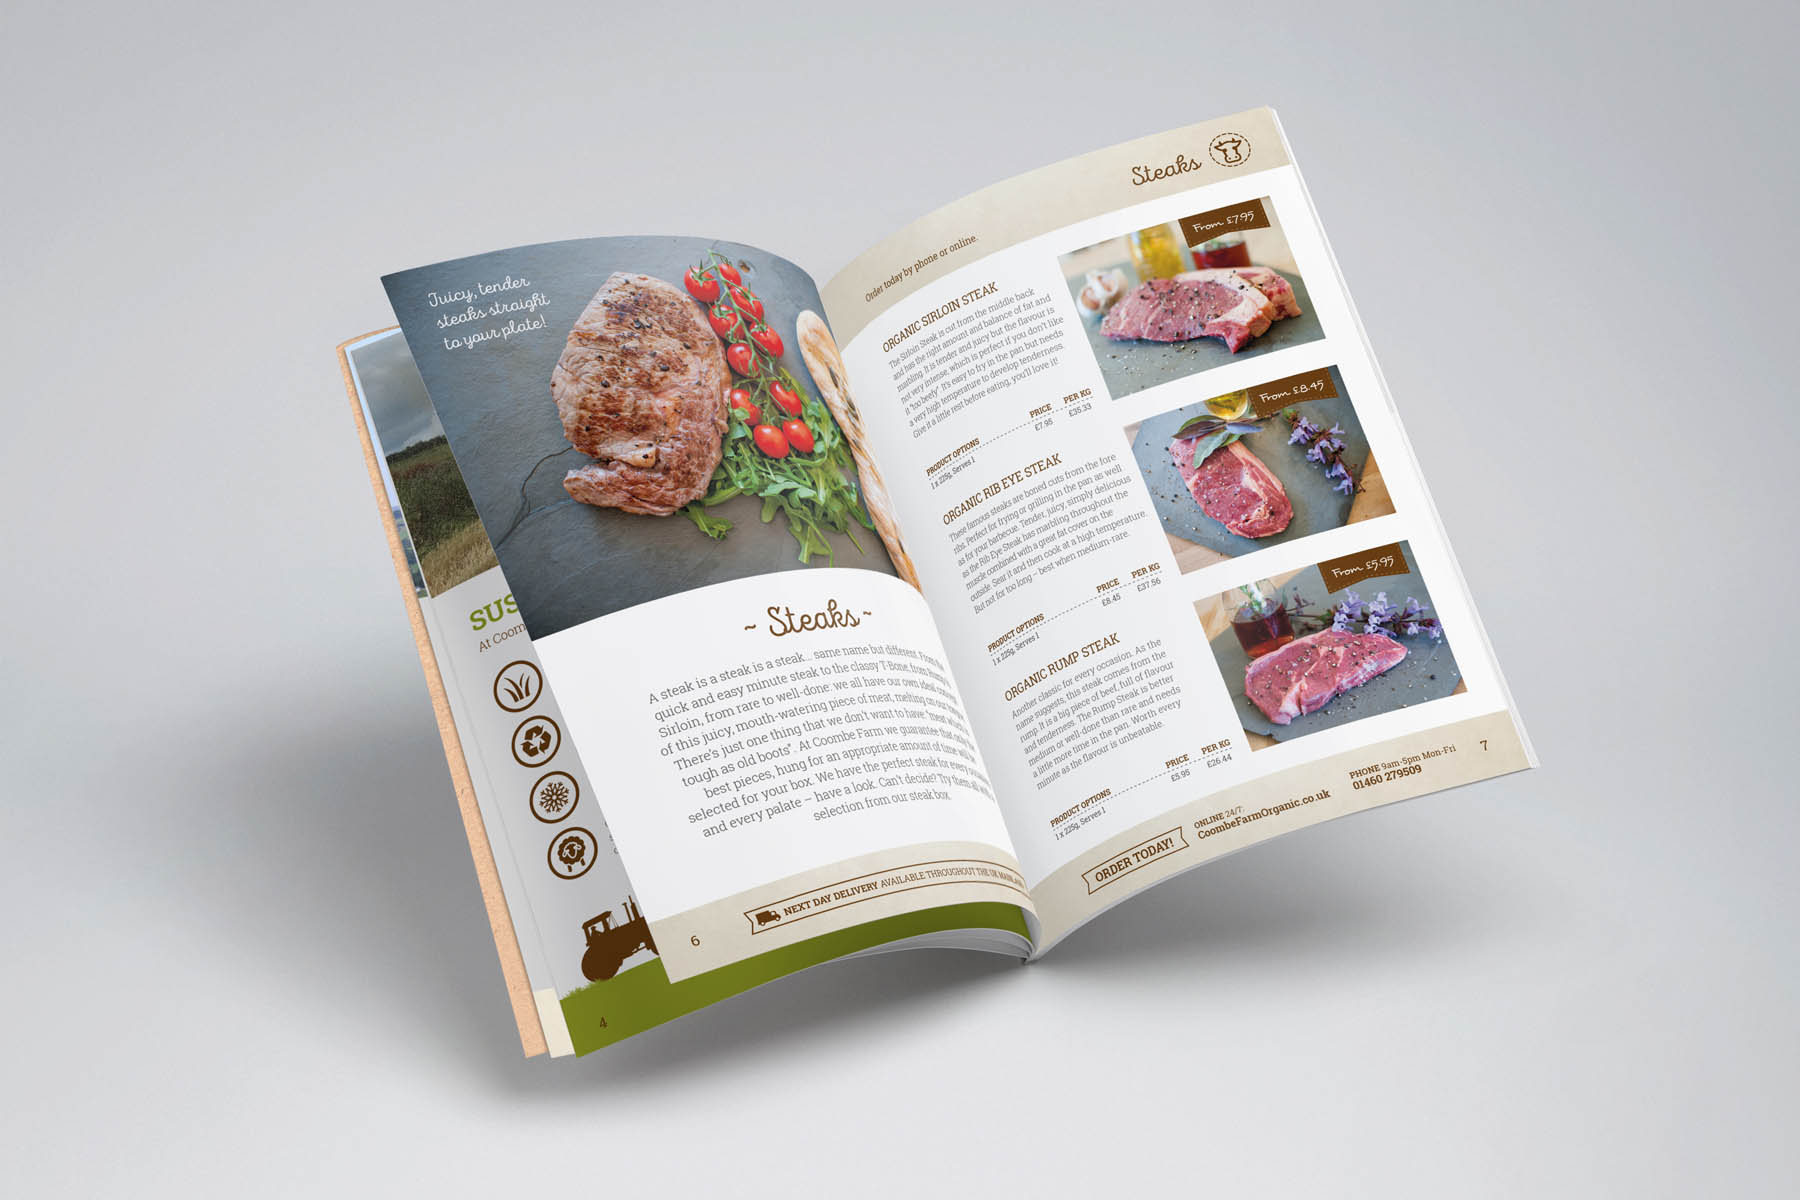 Coombe farm catalogue open page